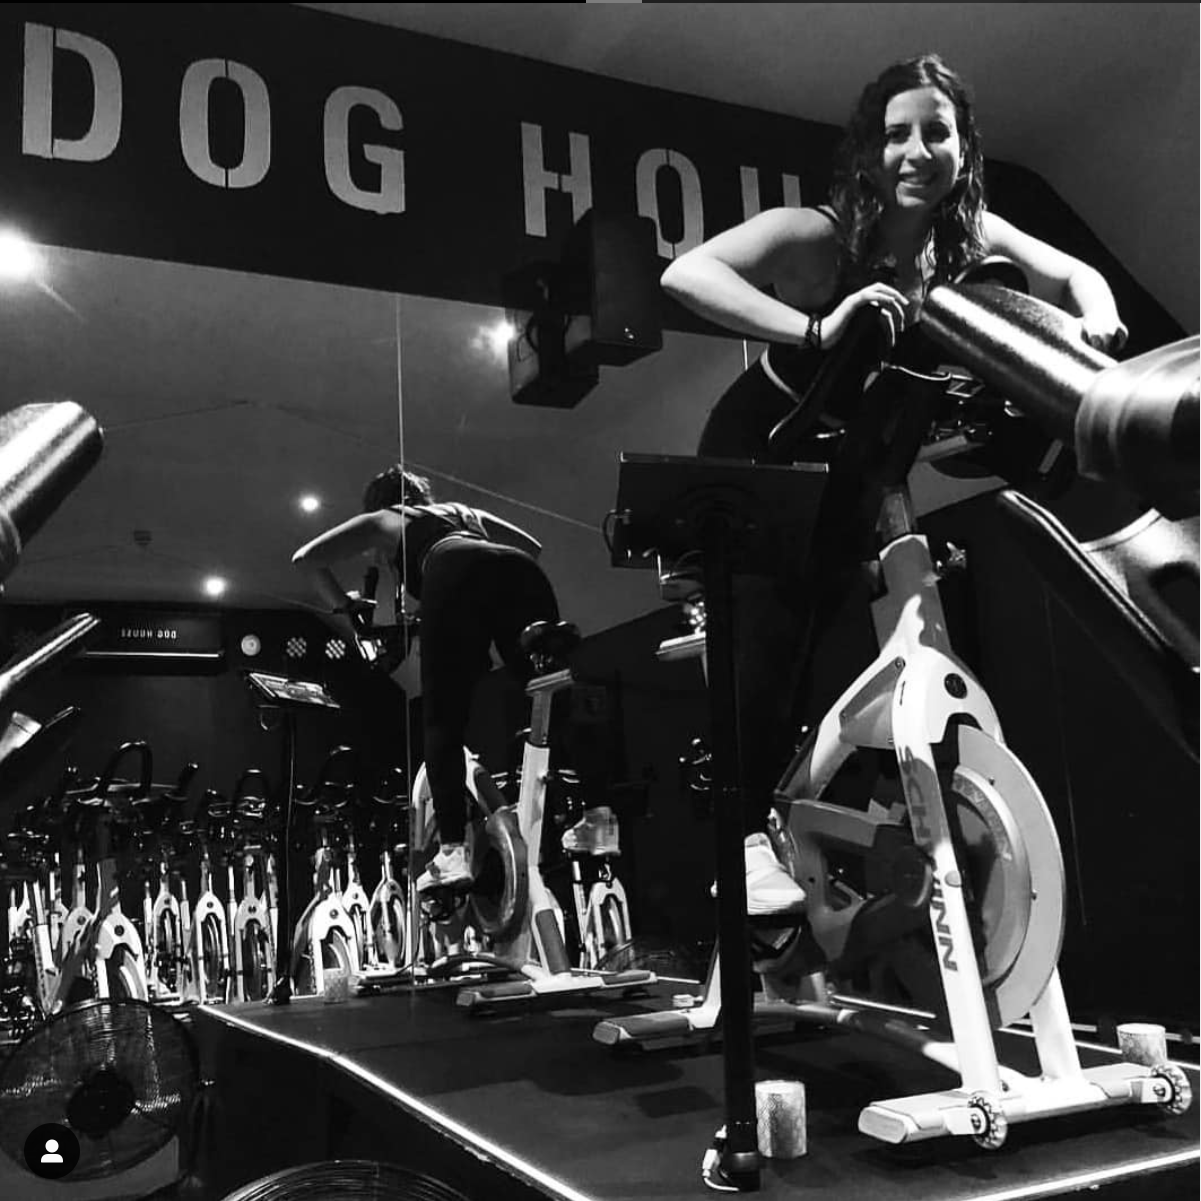 Image credit: Dog House Fitness